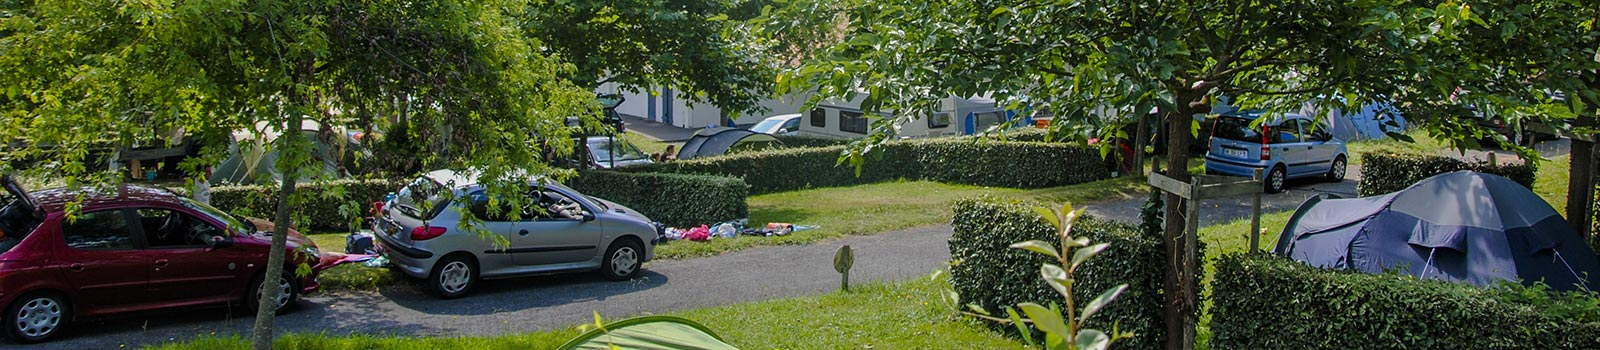 camping pays basque avec location emplacements